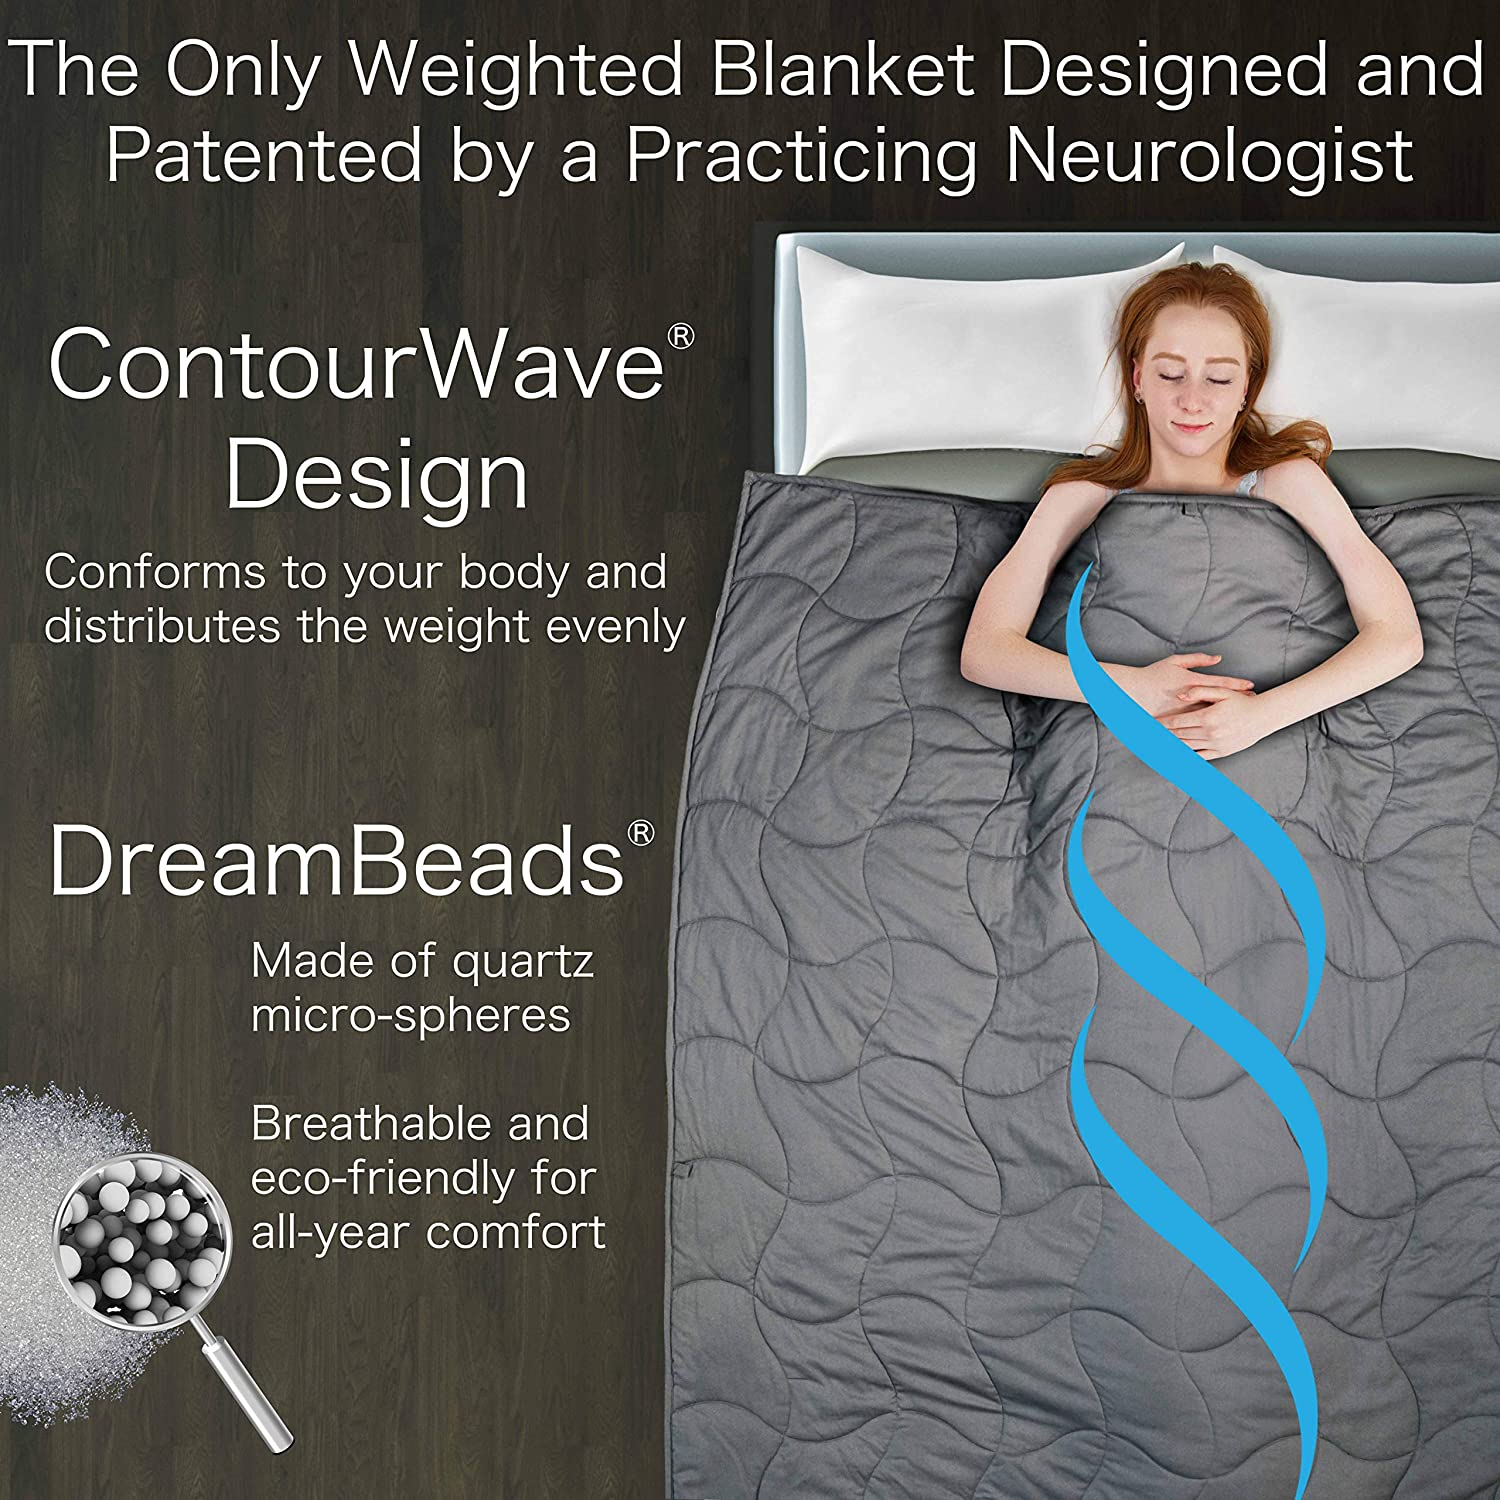 Dr Heavy Calming Blanket for Adults Harts Weighted Blanket Deluxe Set 15 lbs 60x80 Patented ContourWave Weighted Blanket /& Luxurious Microplush Removable Cover